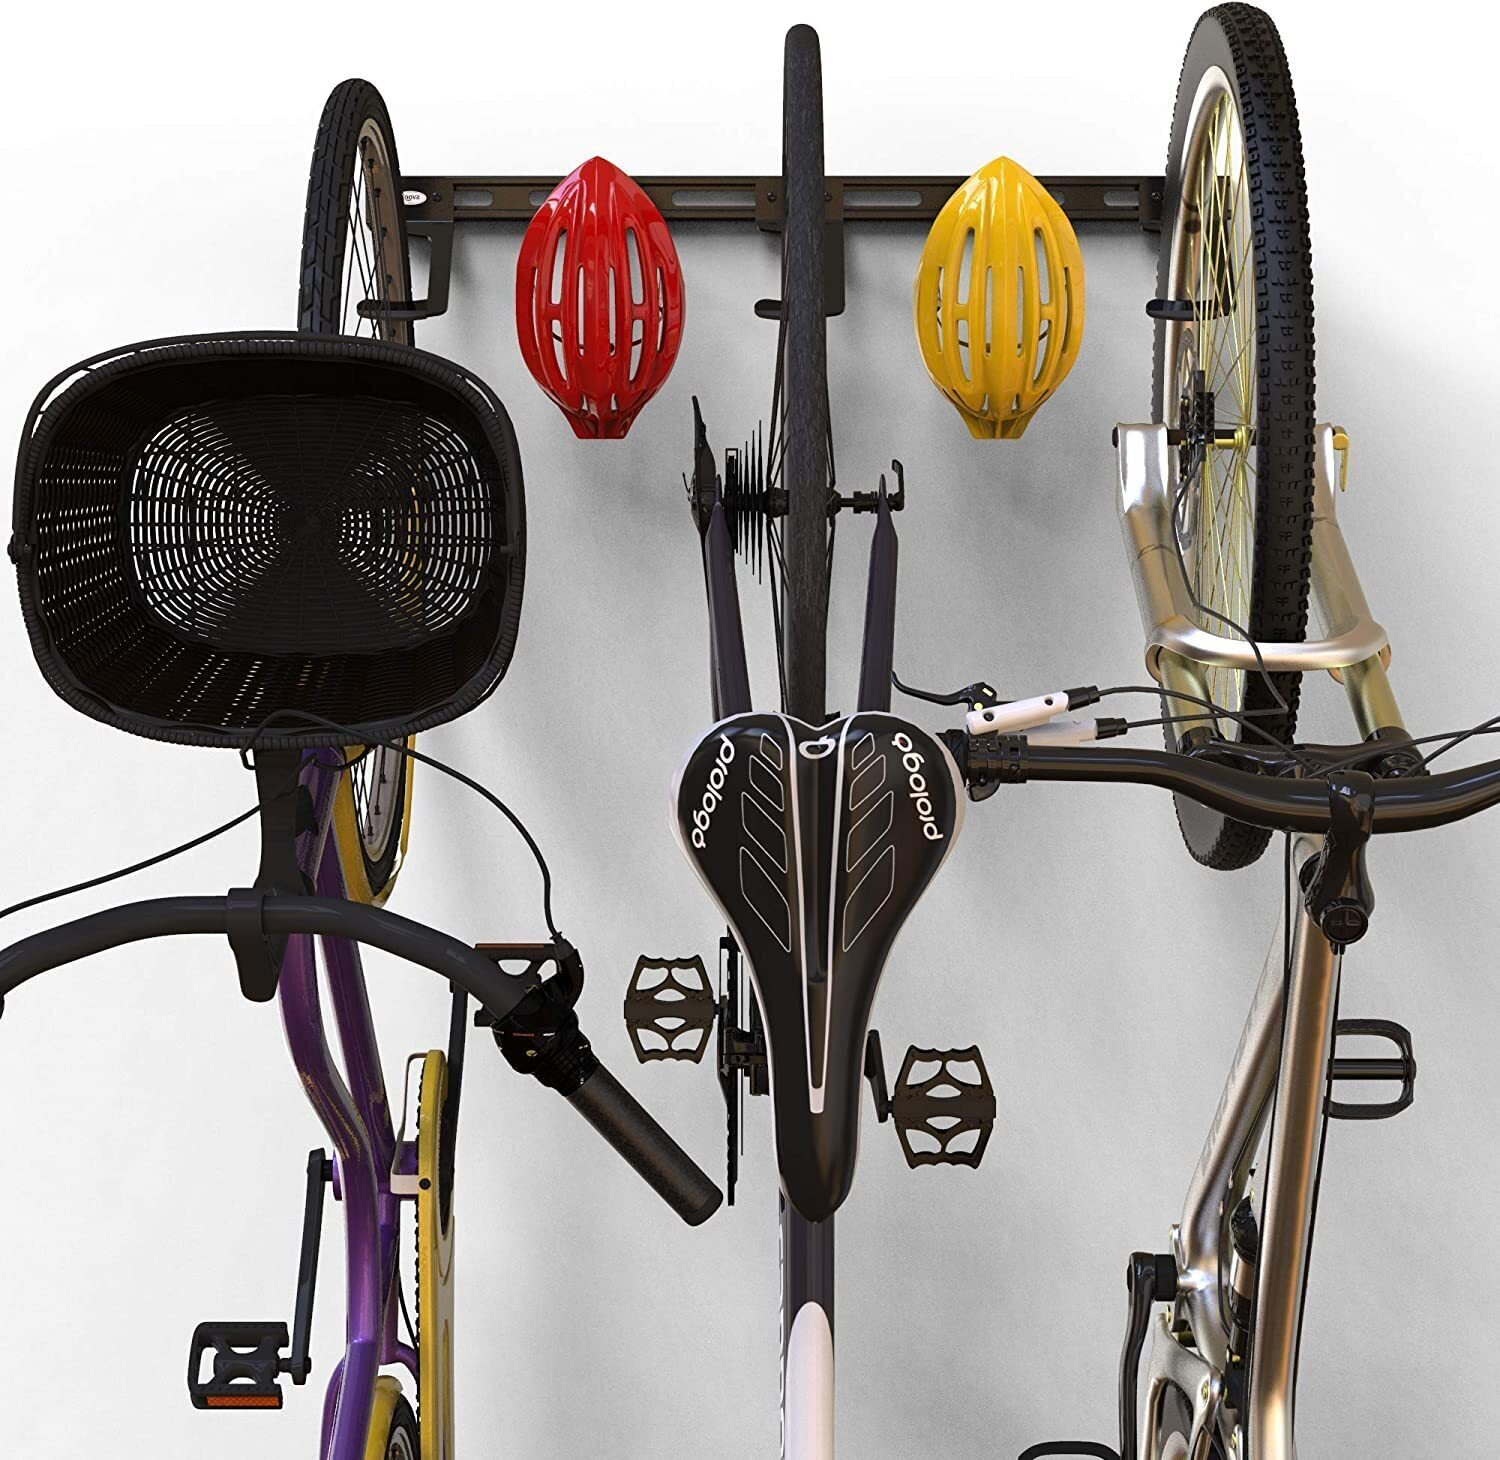 Hanging Bike Rack - Best Practical Father's Day Gift Ideas